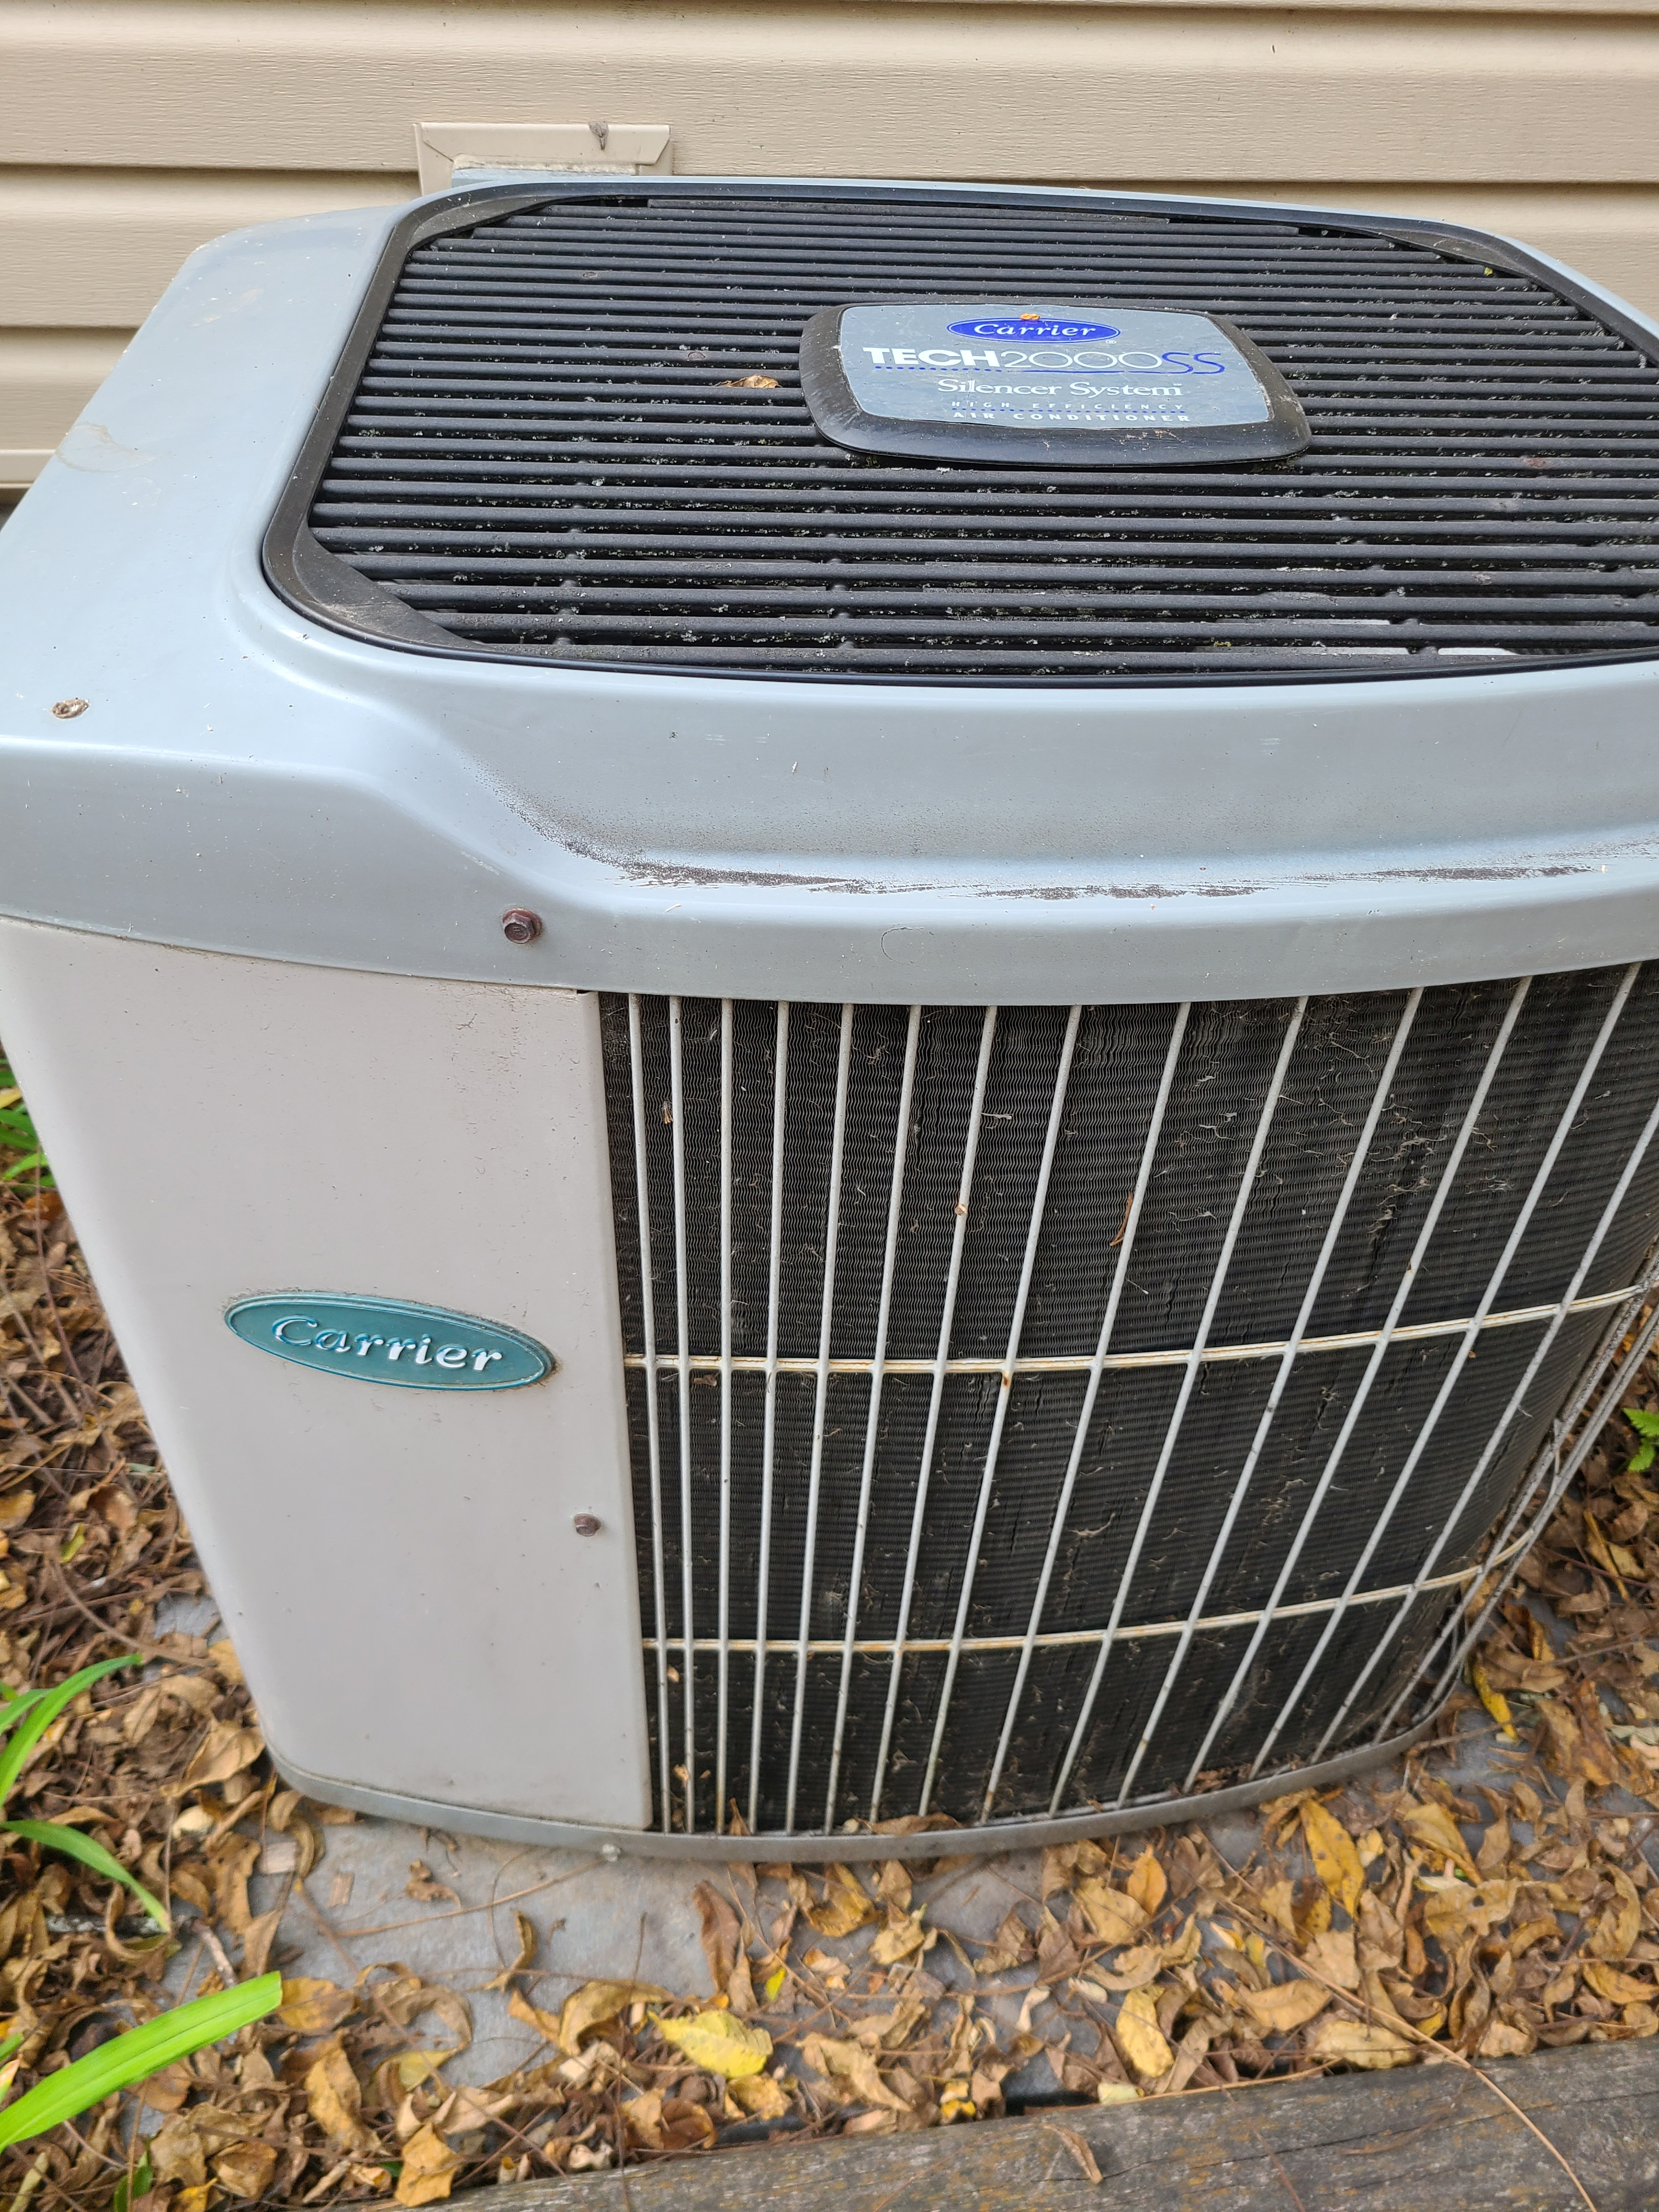 Condensing unit in back yard